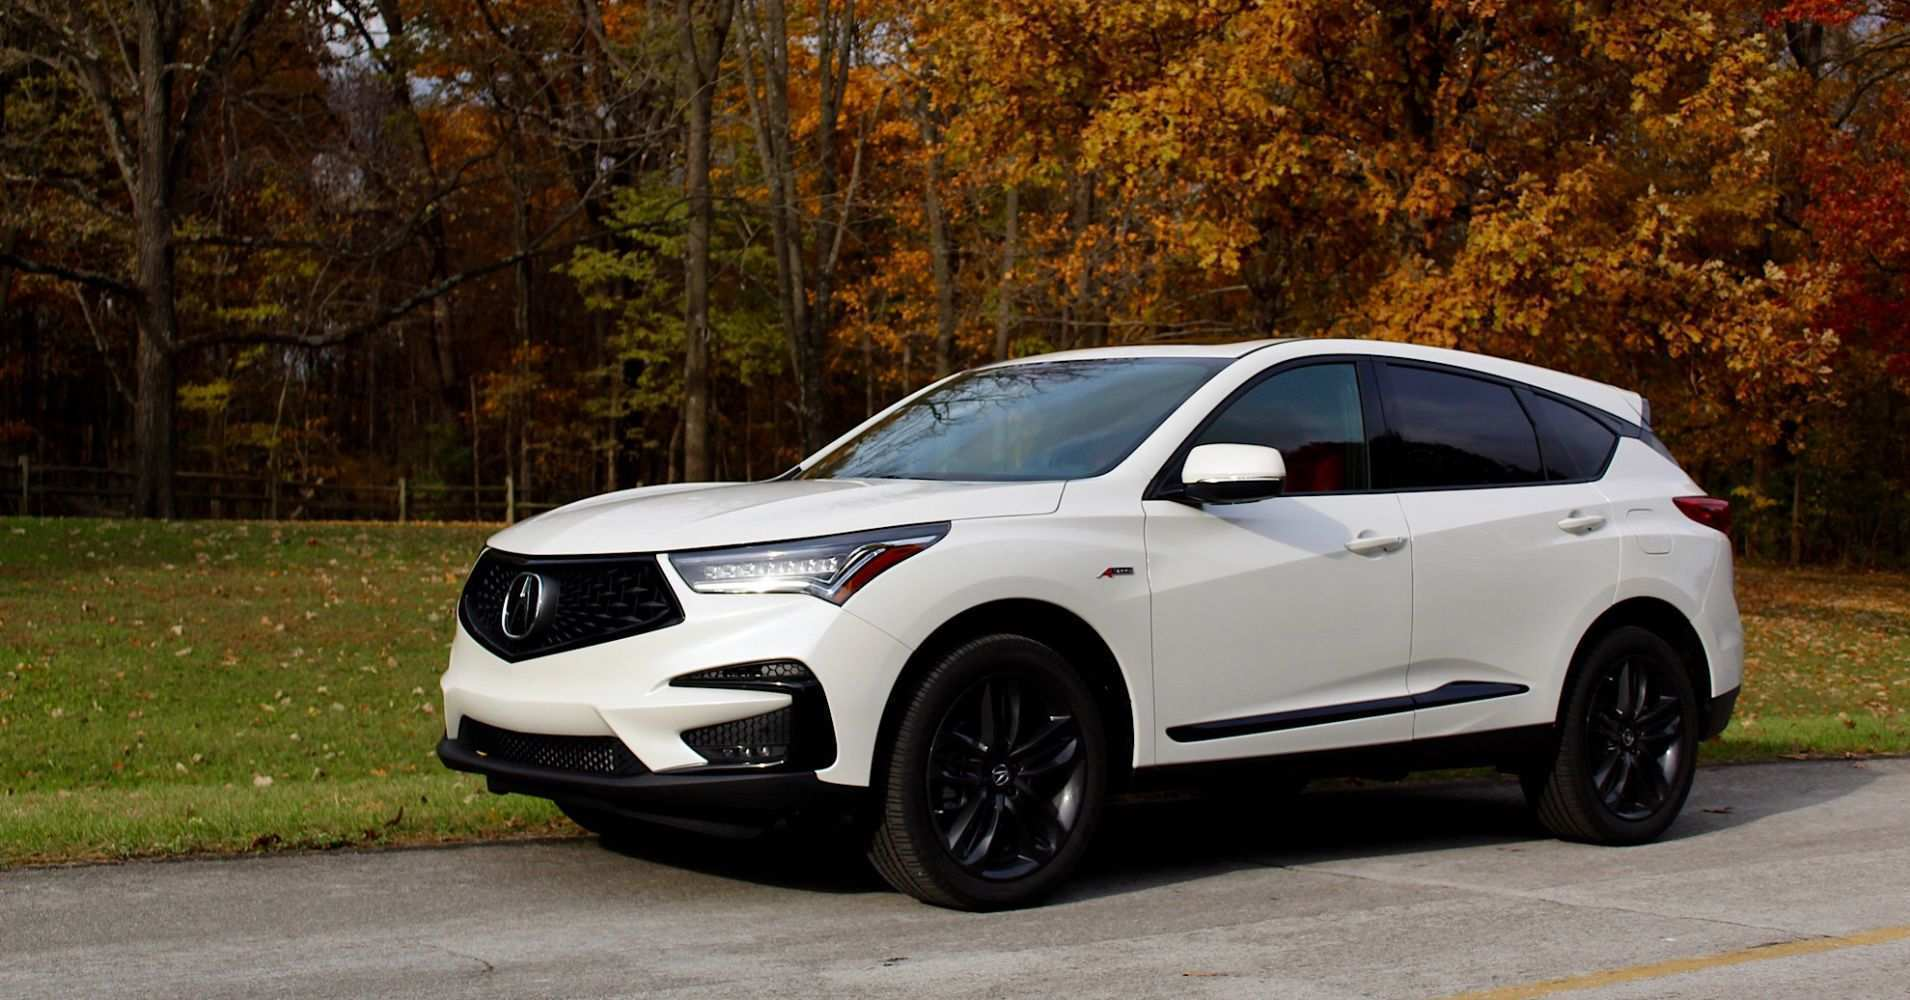 28 All New The Acura Rdx 2019 Lane Keep Assist Review Style by The Acura Rdx 2019 Lane Keep Assist Review